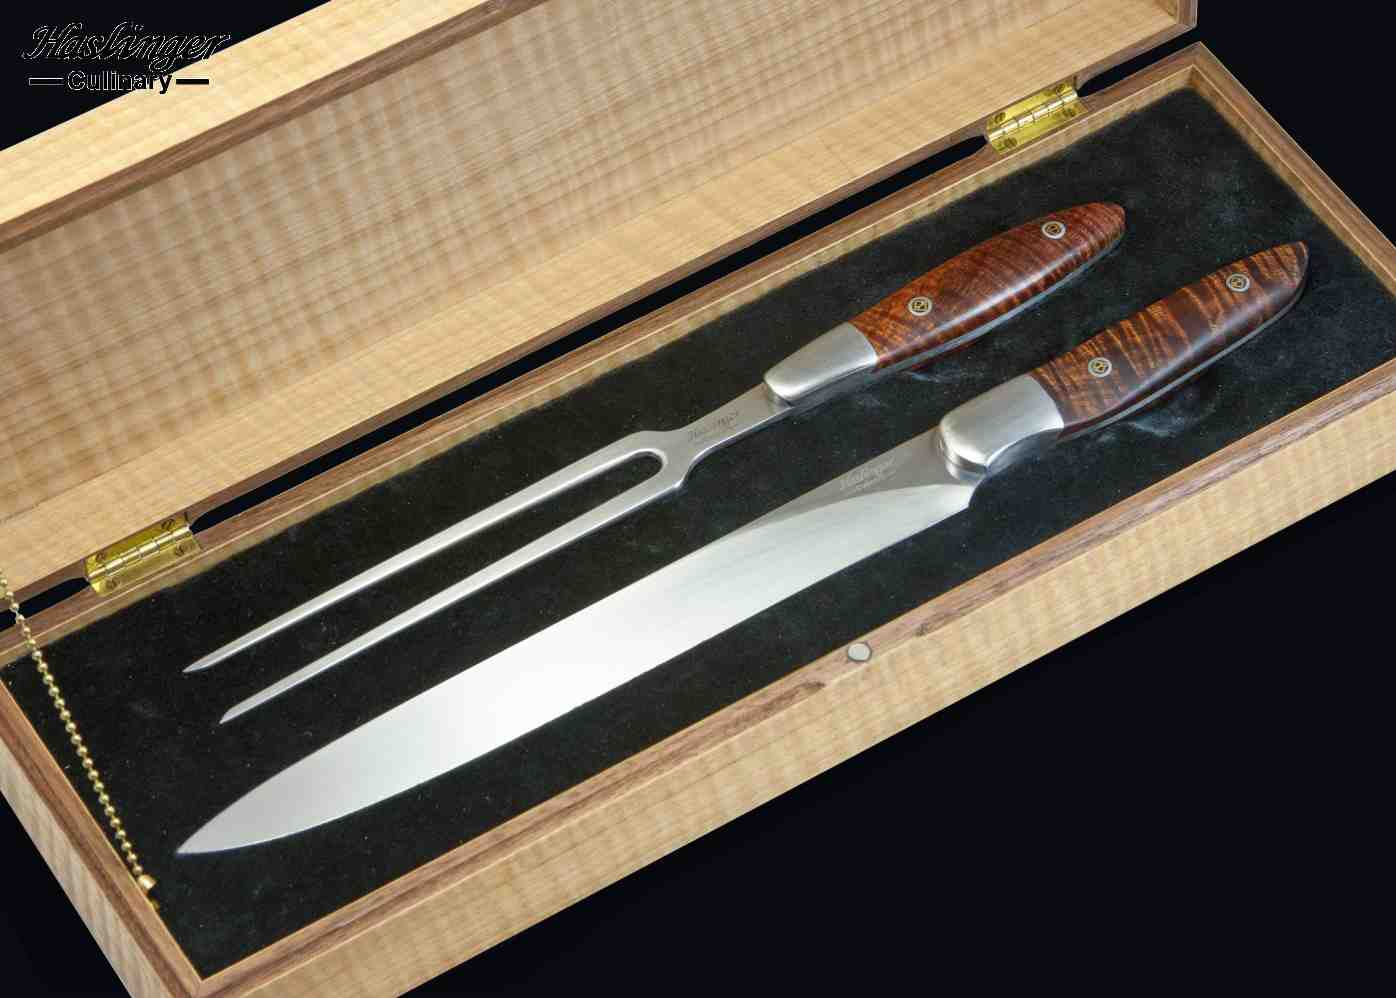 Carving Set with Curly Koa Handle in Anagree Display Box